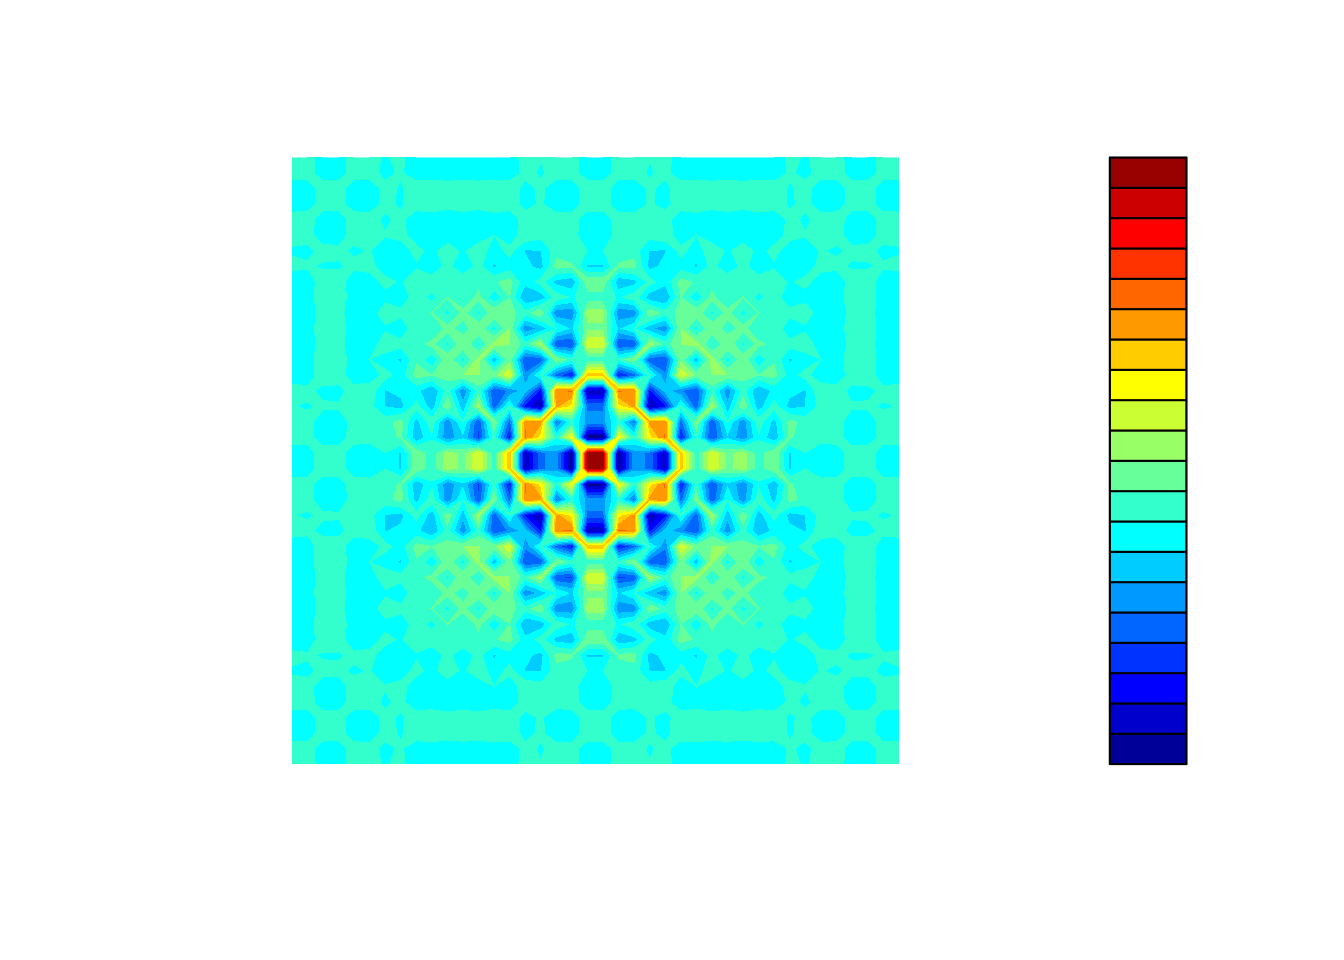 Original view of jet.colors palette from {matlab}.